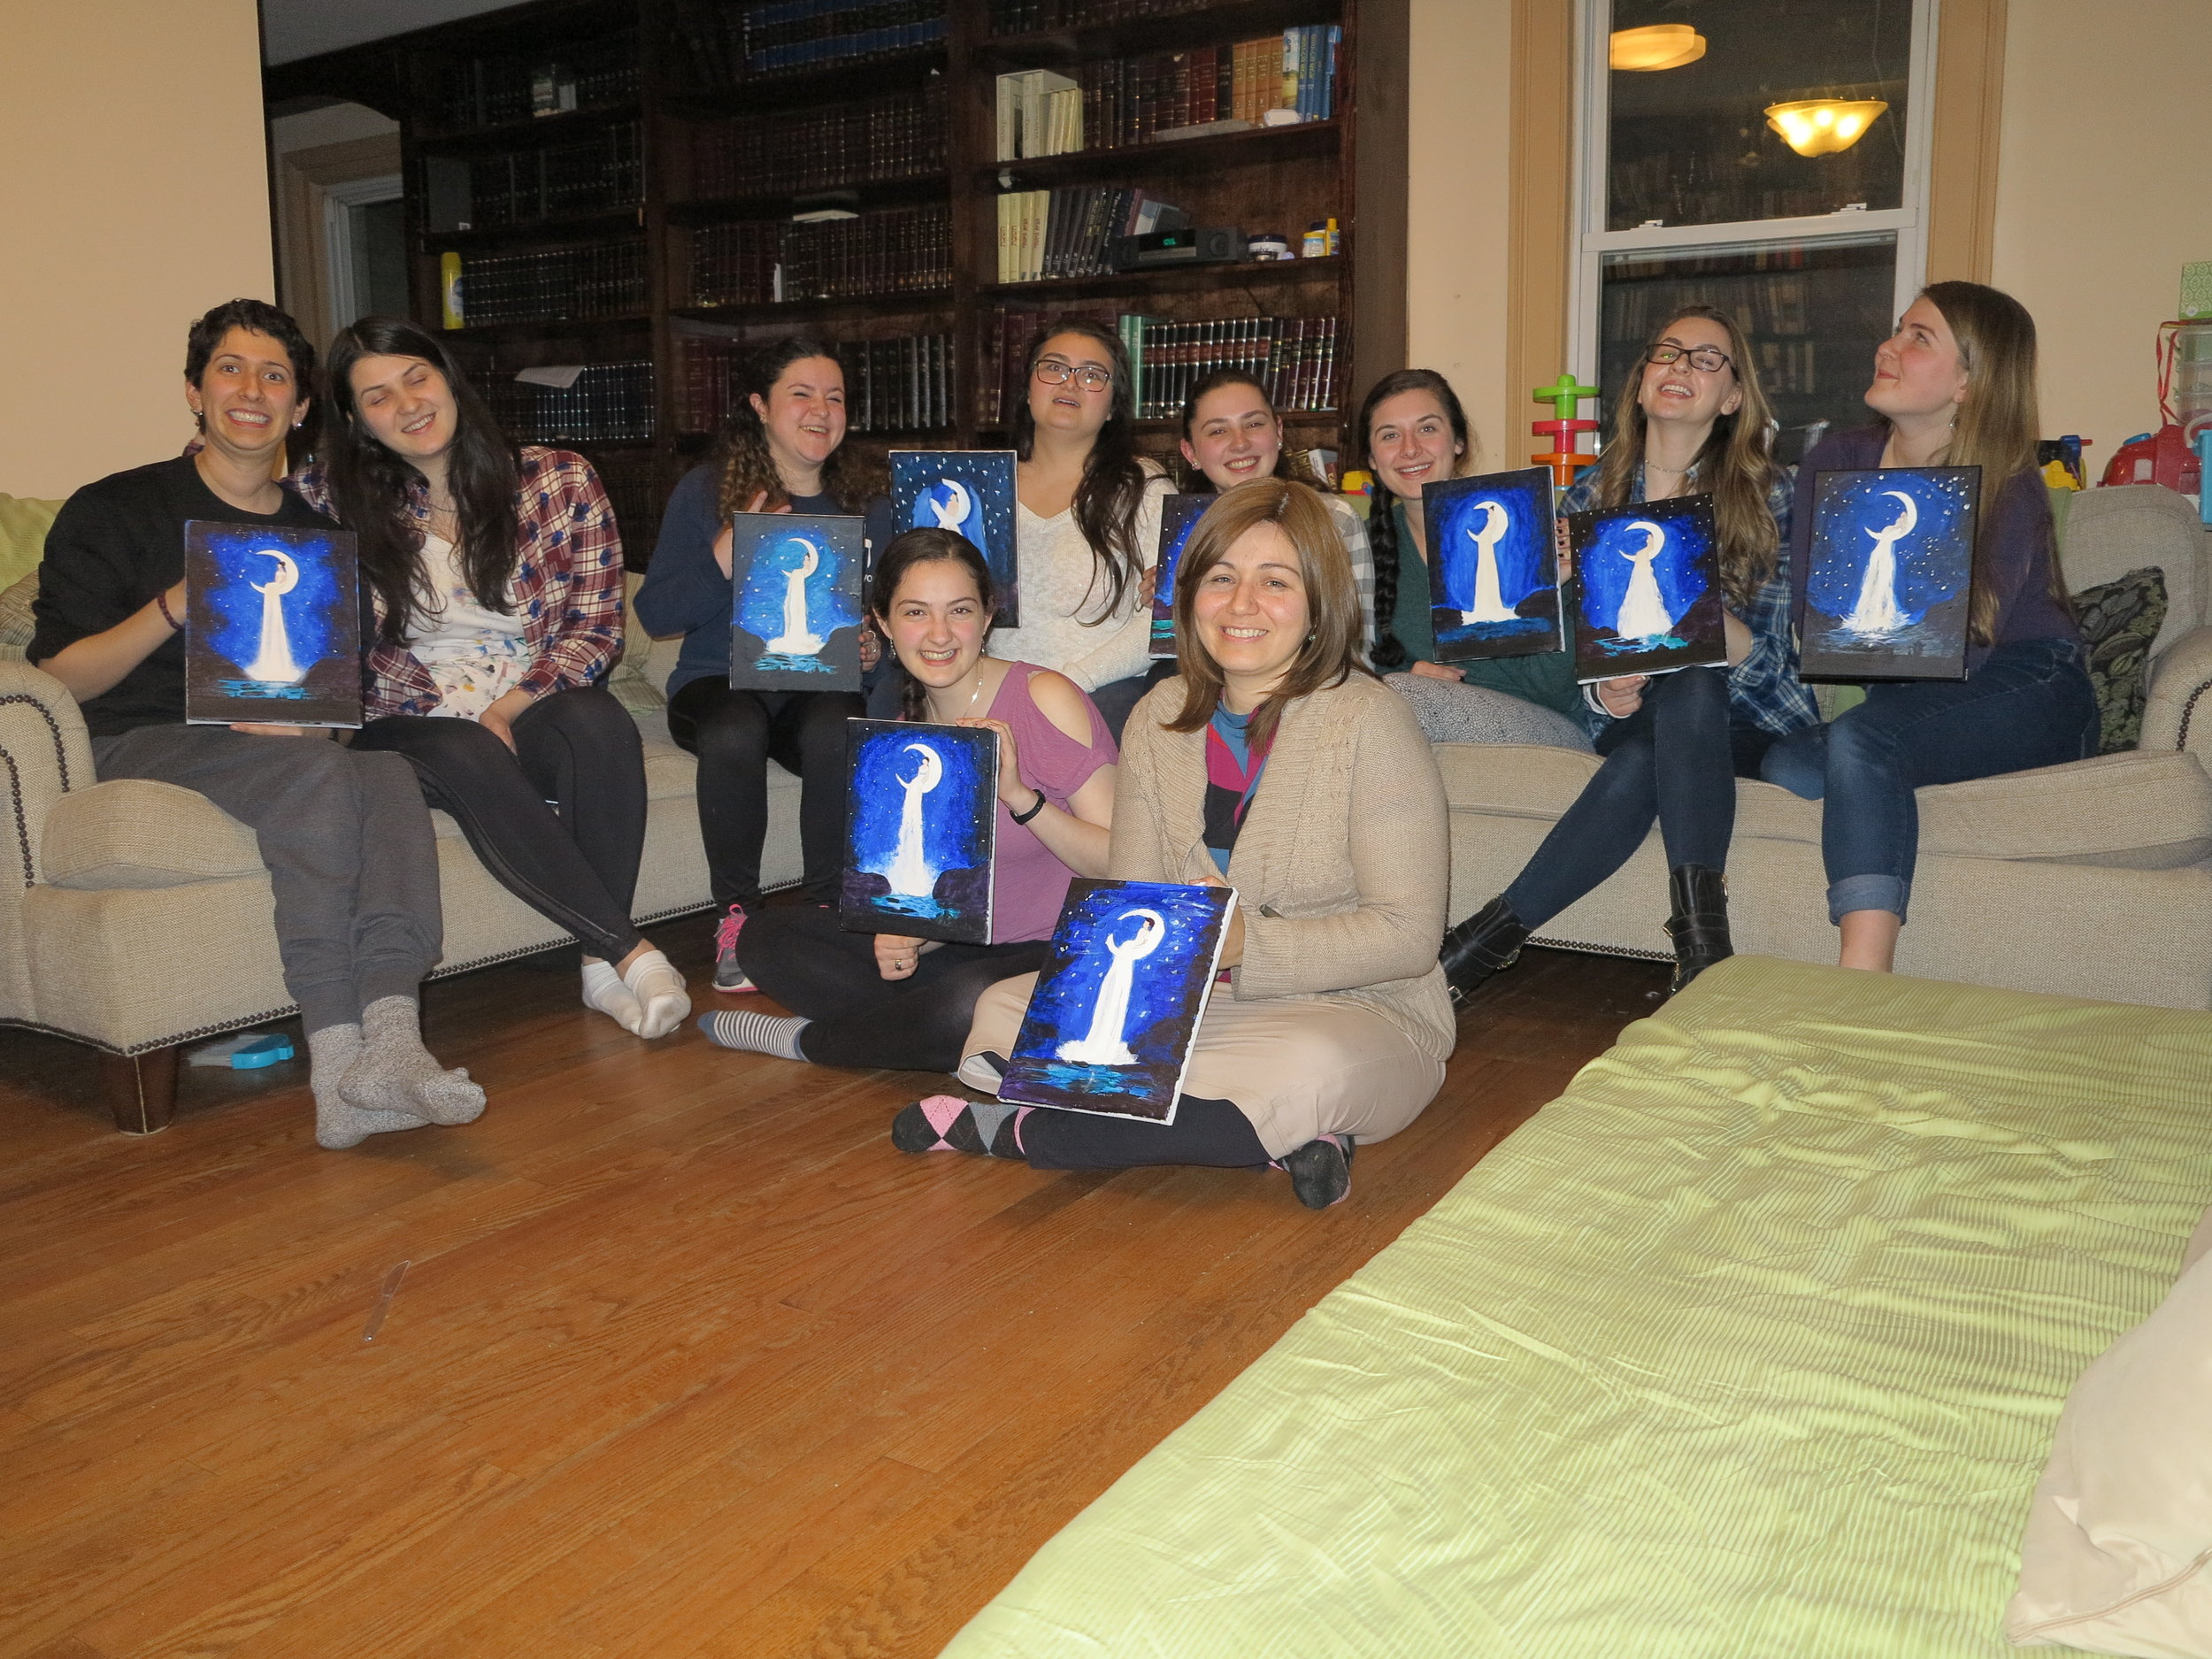 Women's Paint Night - Look at the Jewish culture you foster!